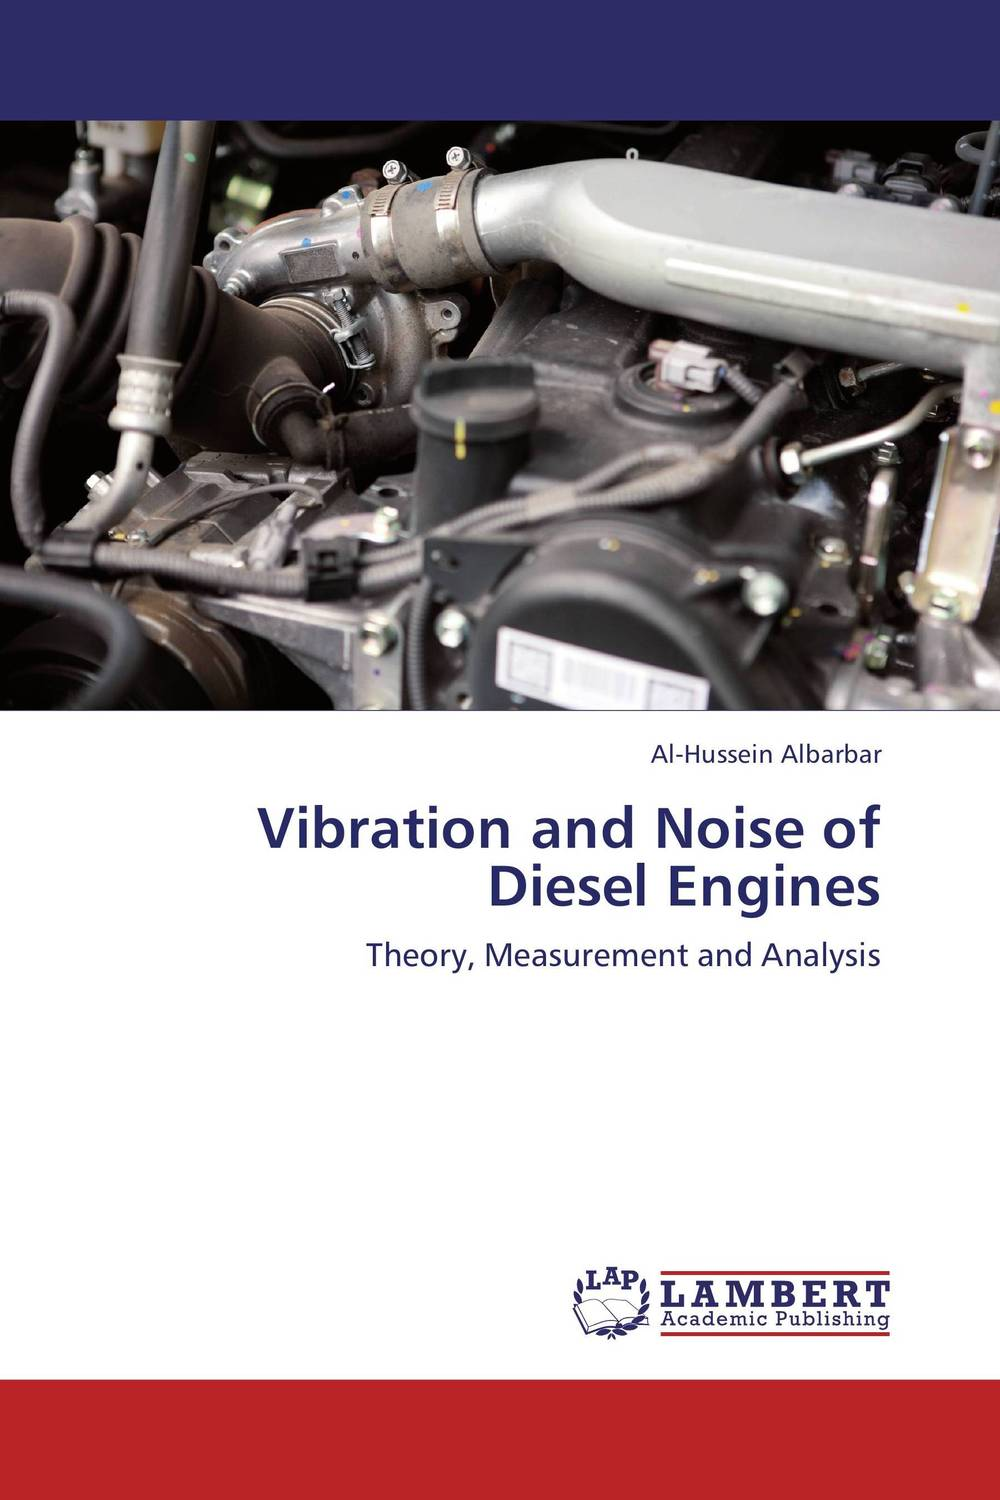 Vibration and Noise of Diesel Engines ocma mec 1 recommendations for the protection of diesel engines operat in hazard areas